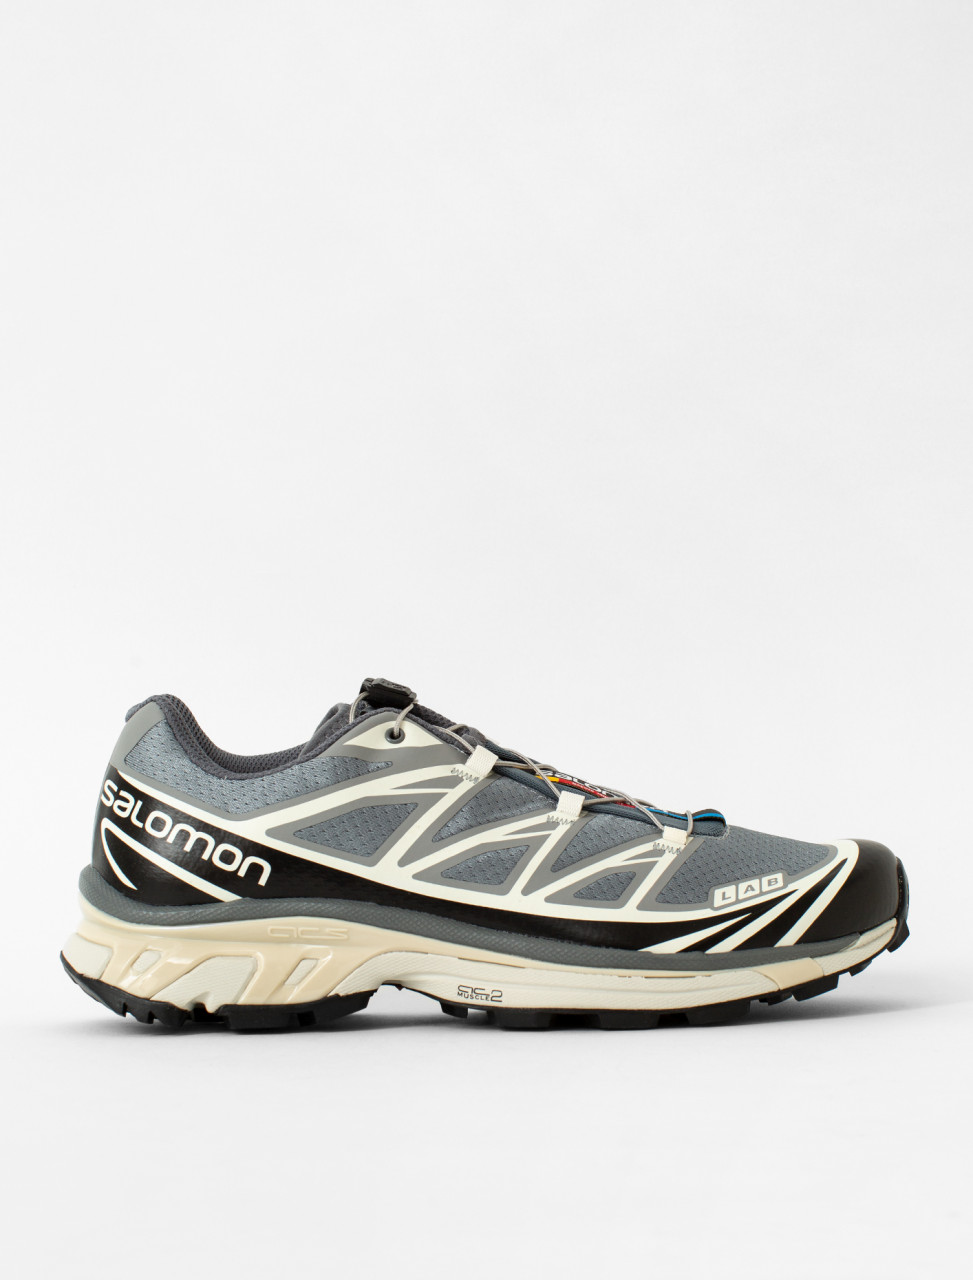 S/LAB XT-6 SOFTGROUND LT ADV Sneaker